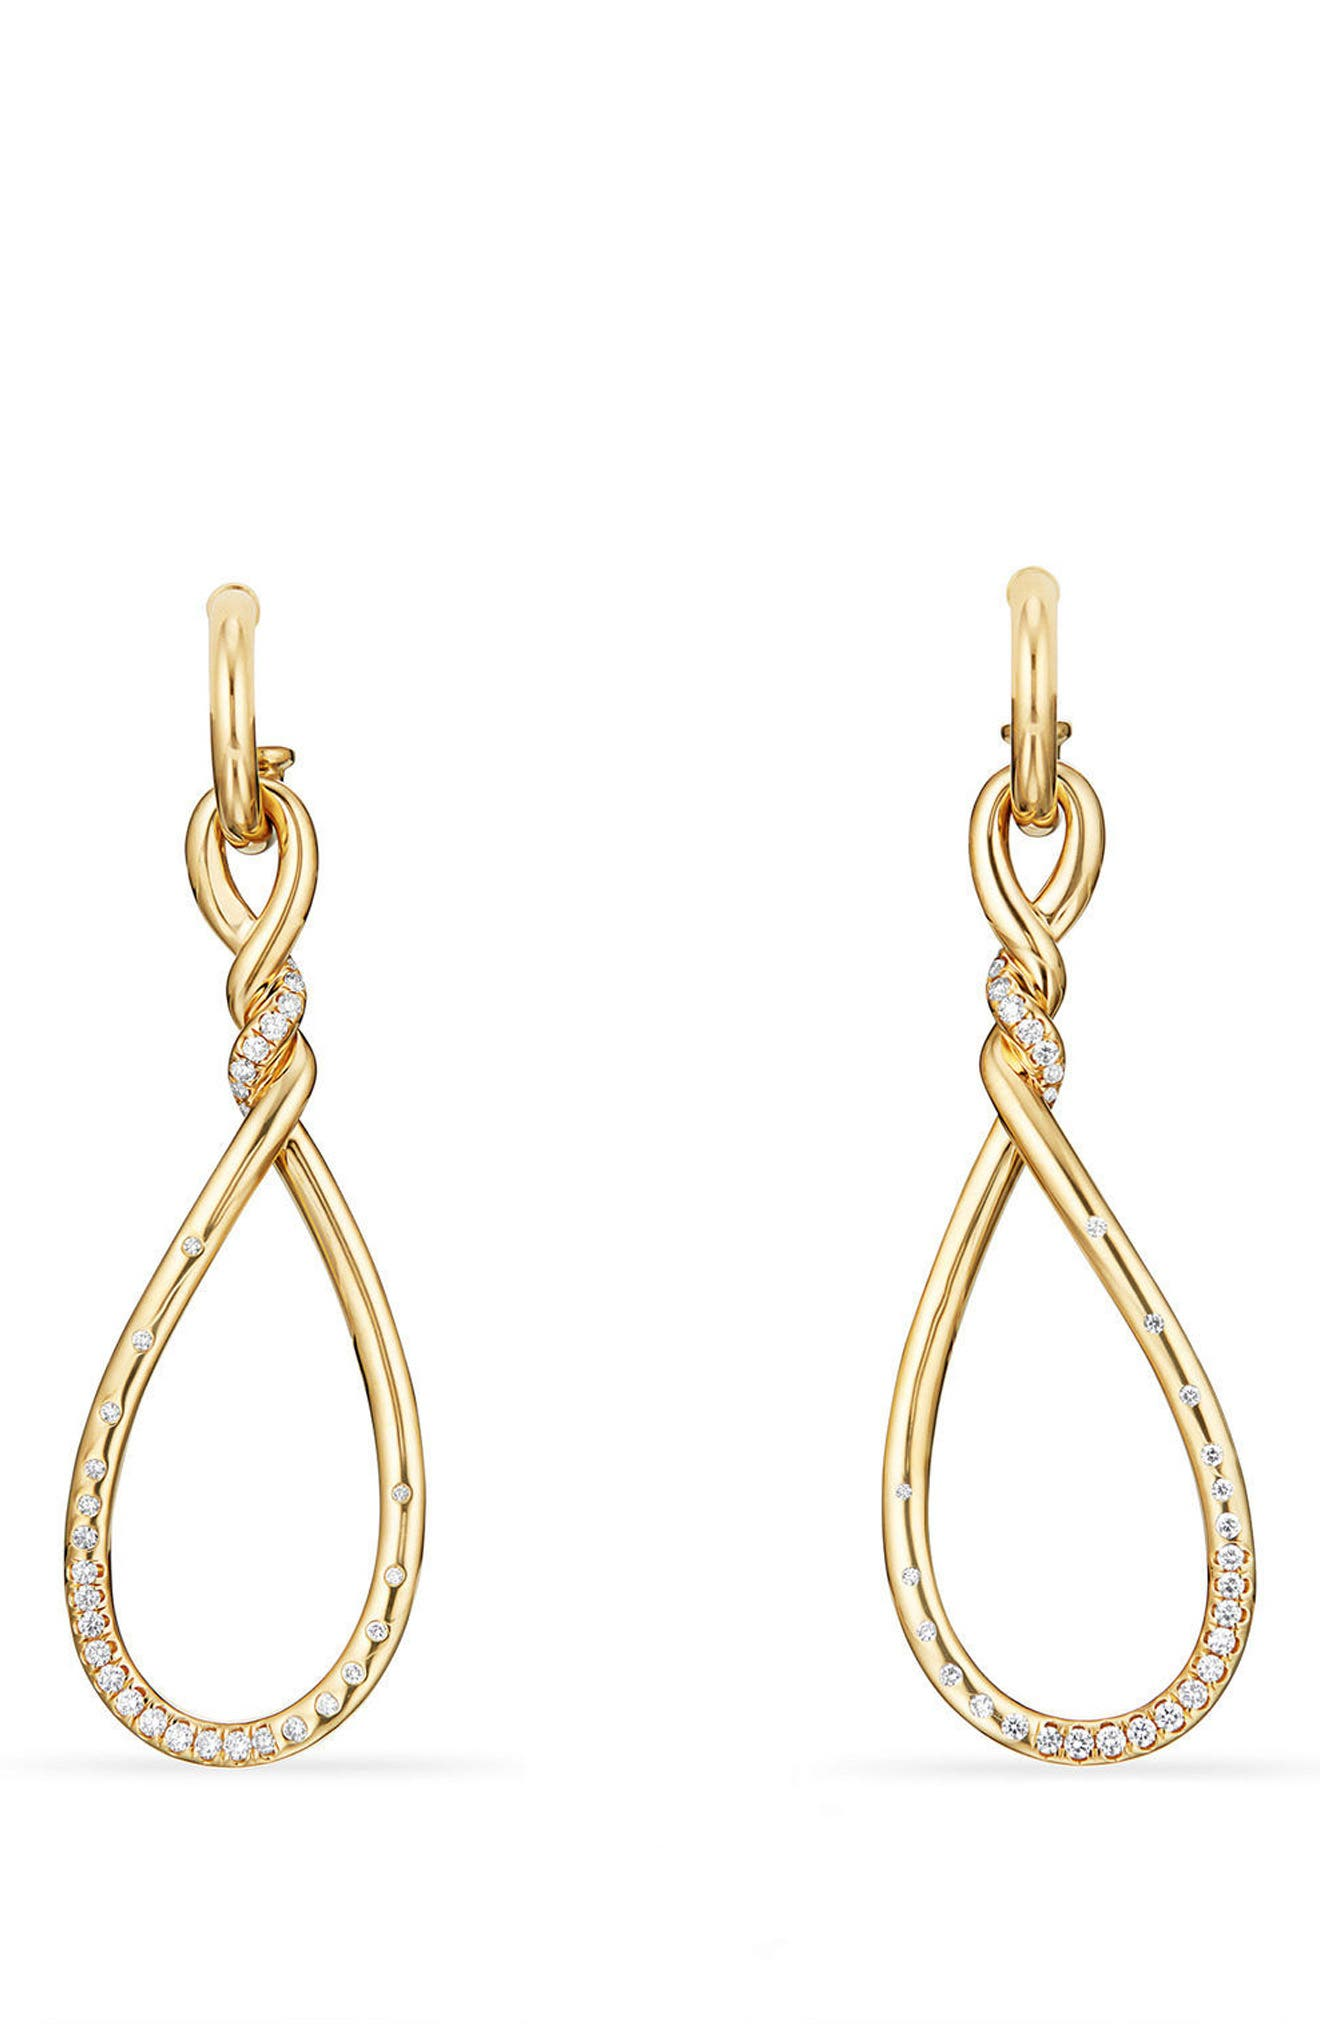 Continuance Large Drop Earrings with Diamonds in 18K Gold,                         Main,                         color, Yellow Gold